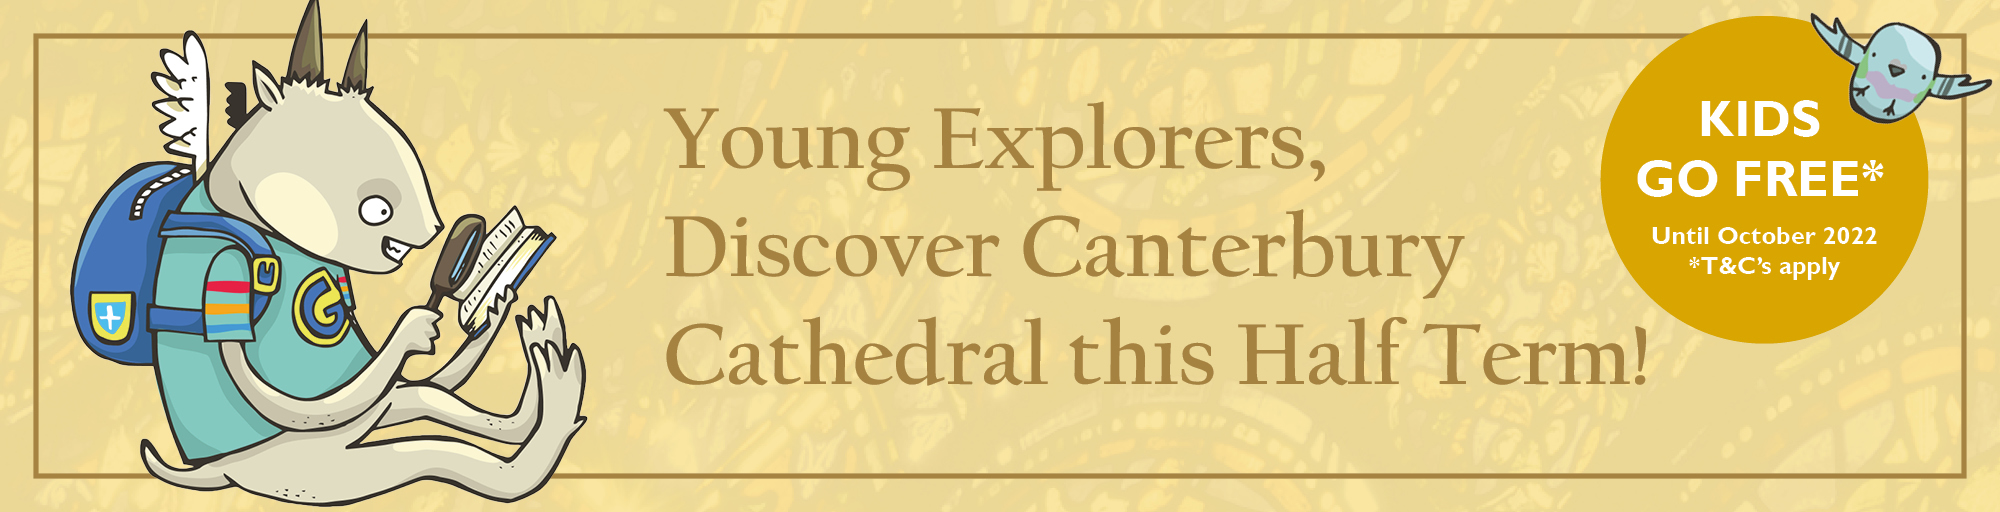 Young Explorers, Discover Canterbury Cathedral this Half Term!